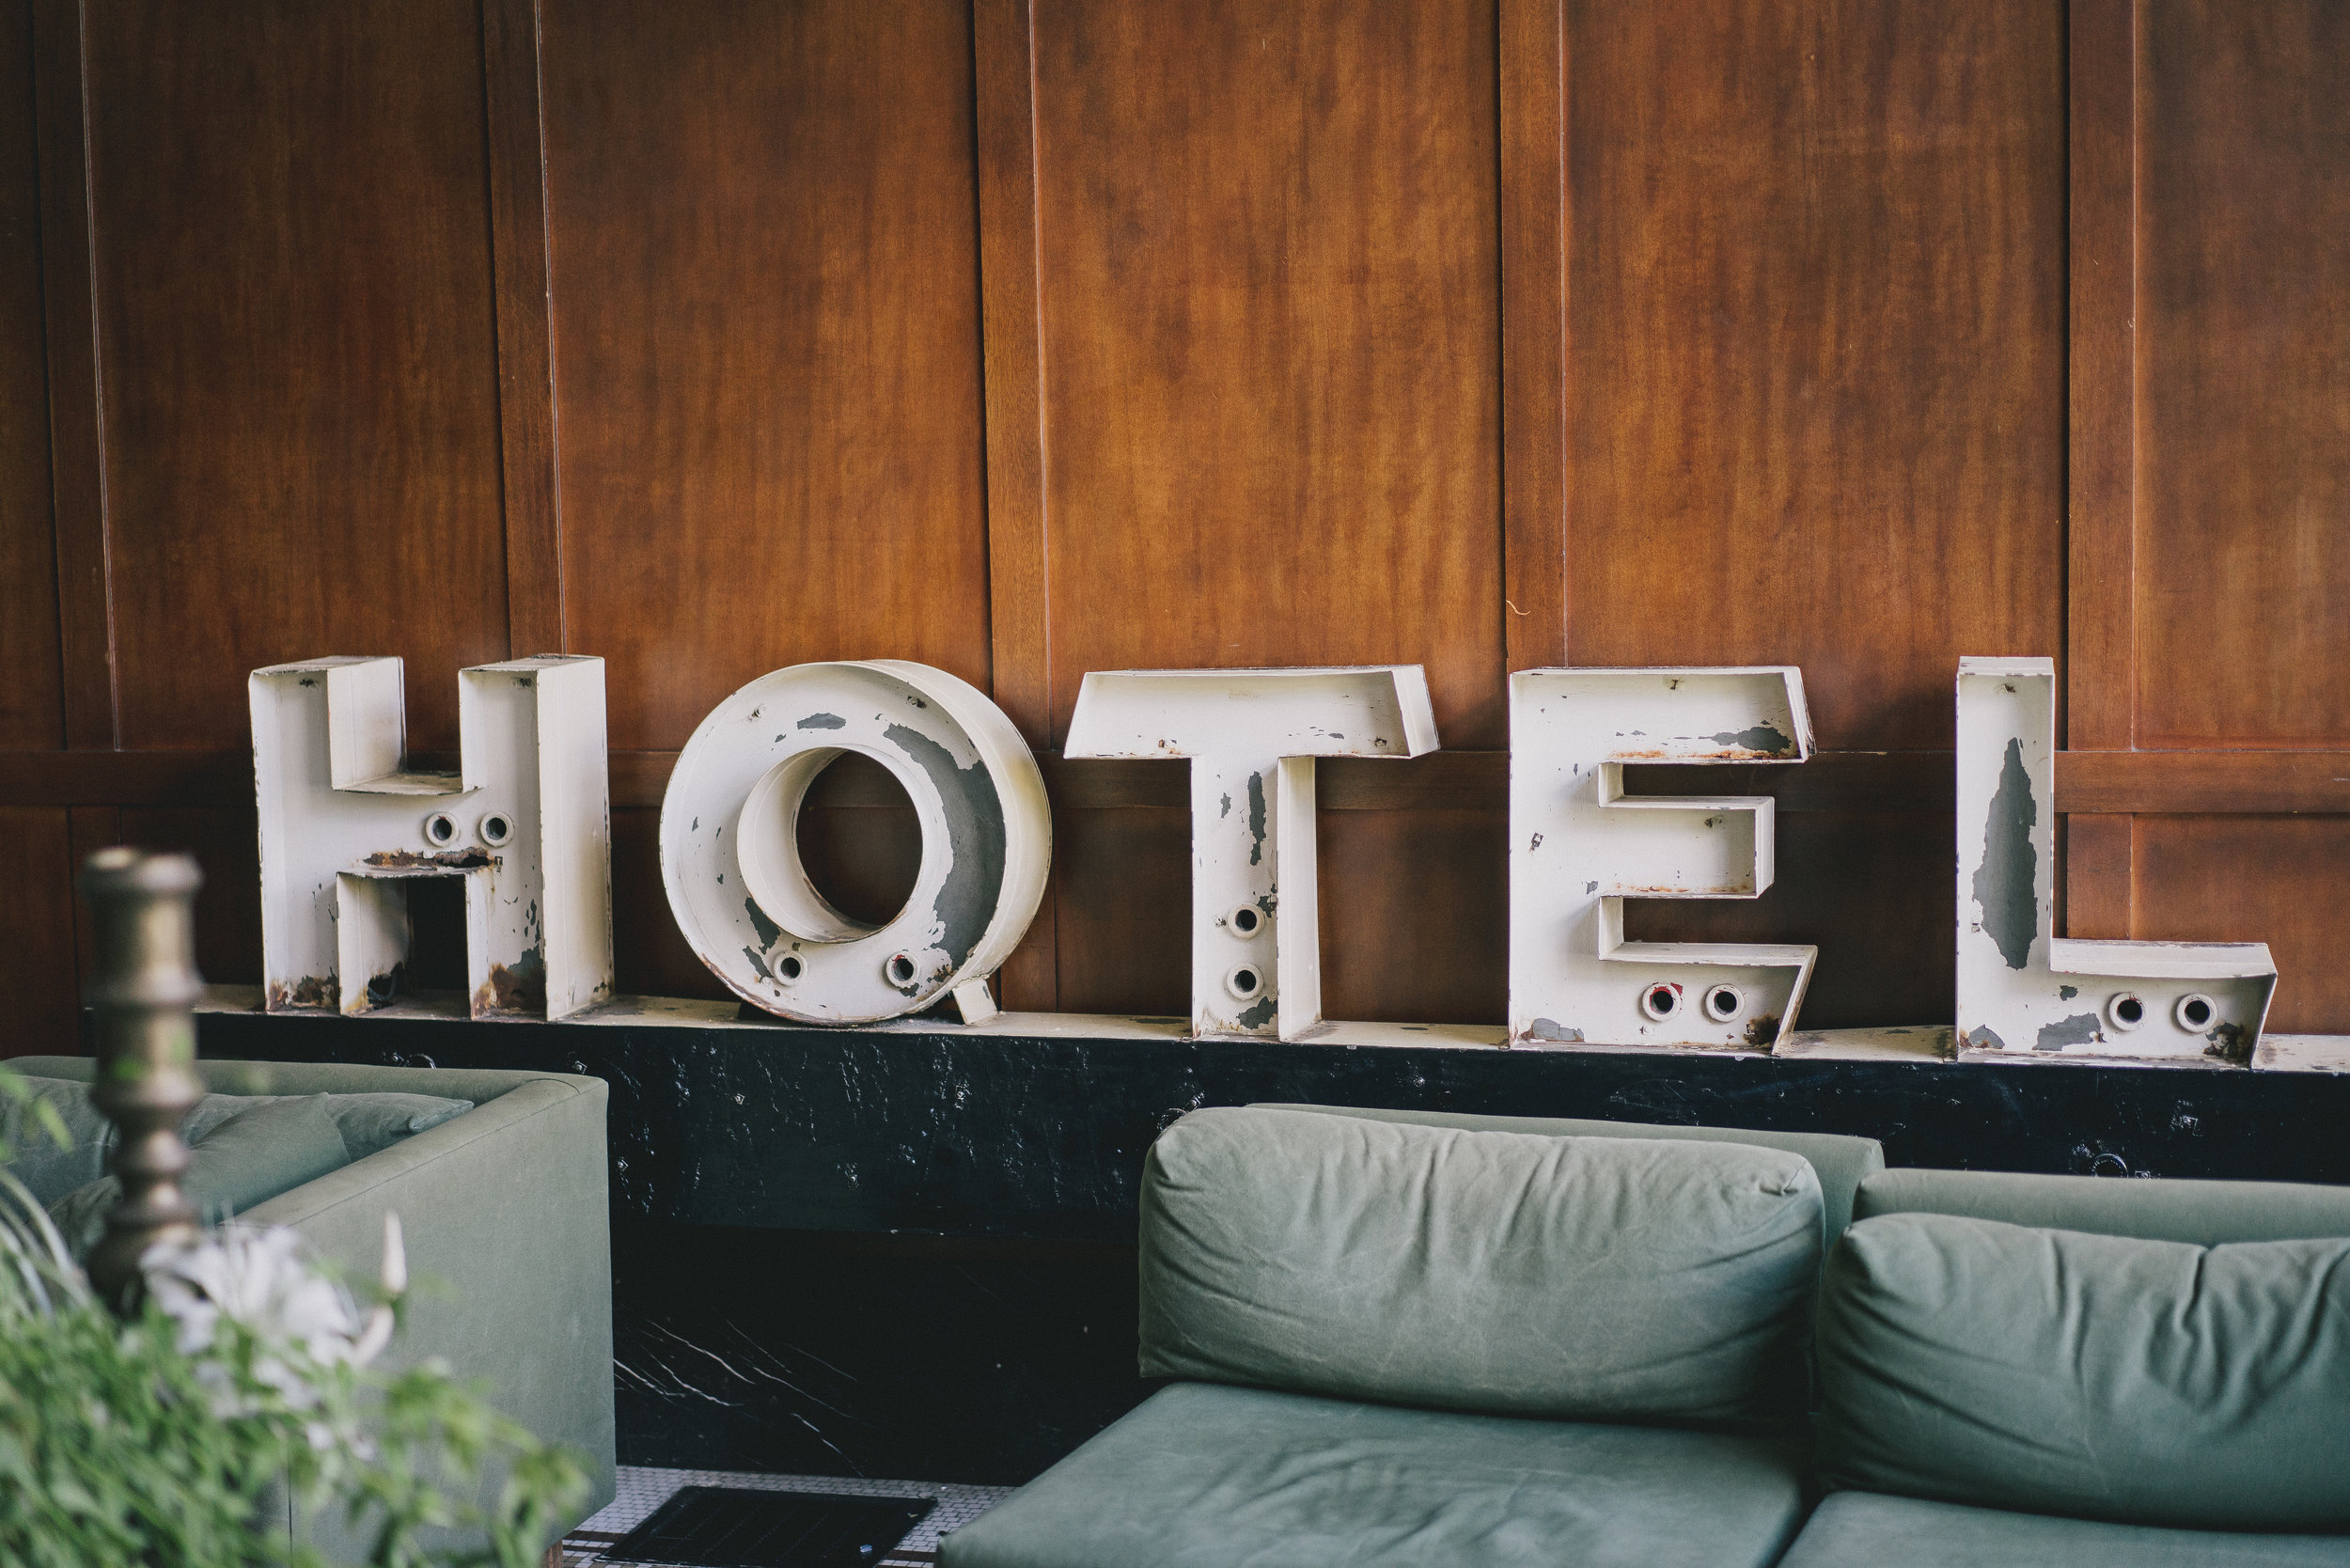 Check hotel websites for tips for your next trip